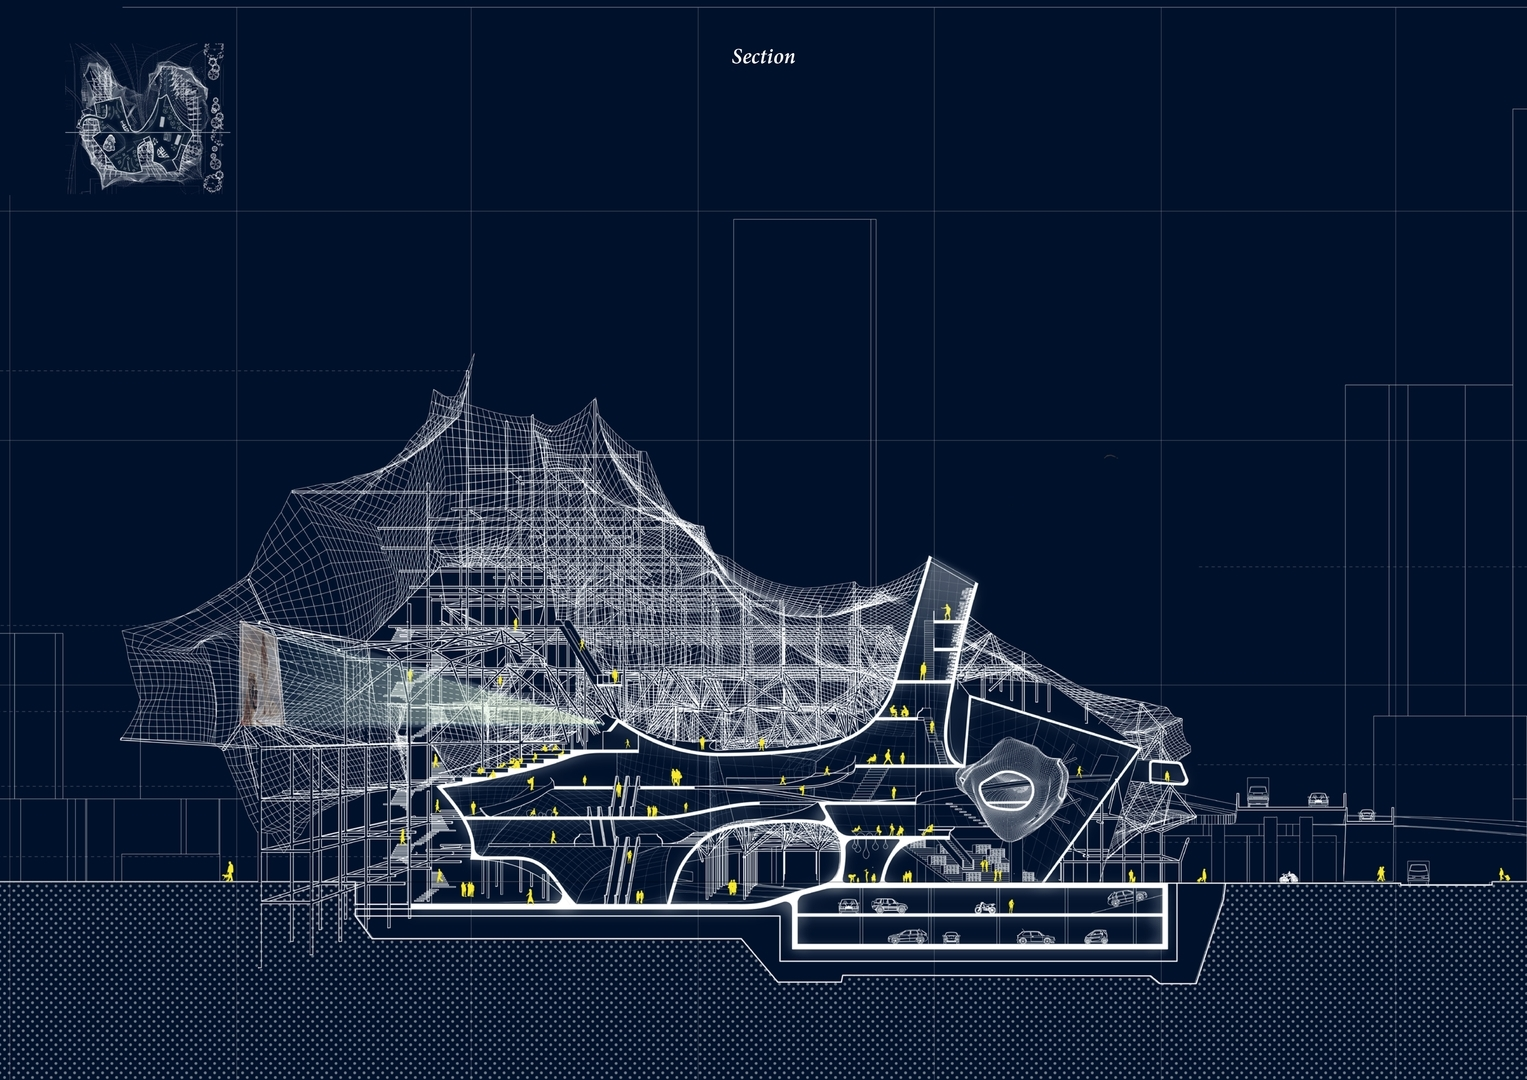 Enlarge Photo: Architecture & Urban Design III (ARCH 5001) – Articulated Surface 9